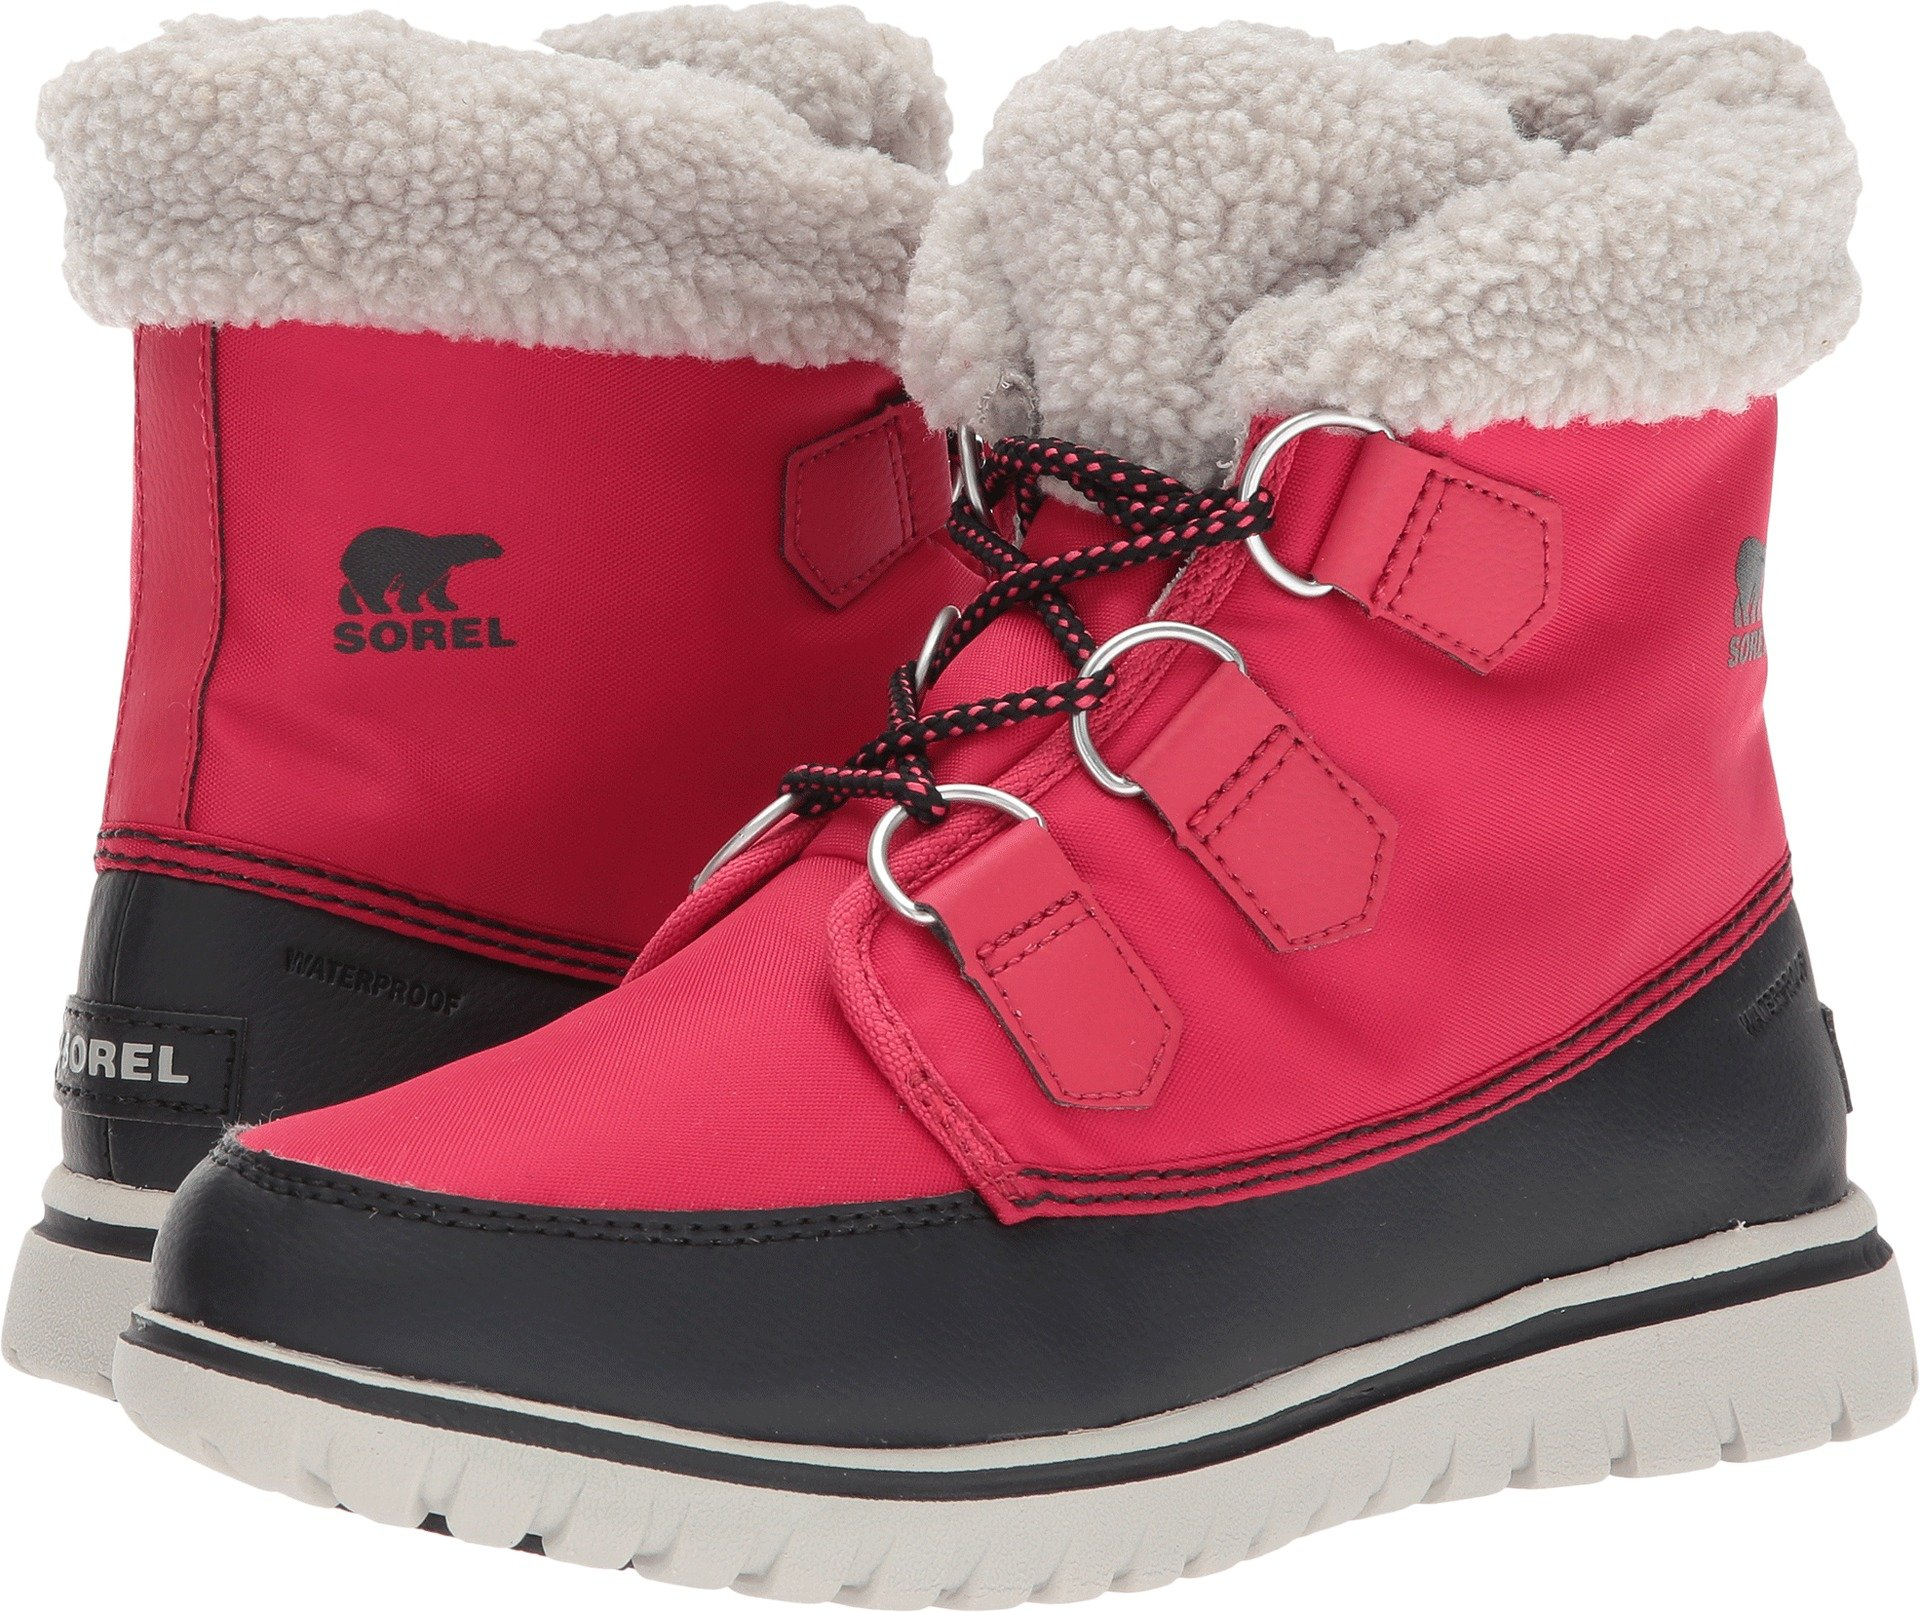 Sorel Women's Cozy Carnival Booties, Candy Apple/Black, 9 B(M) US